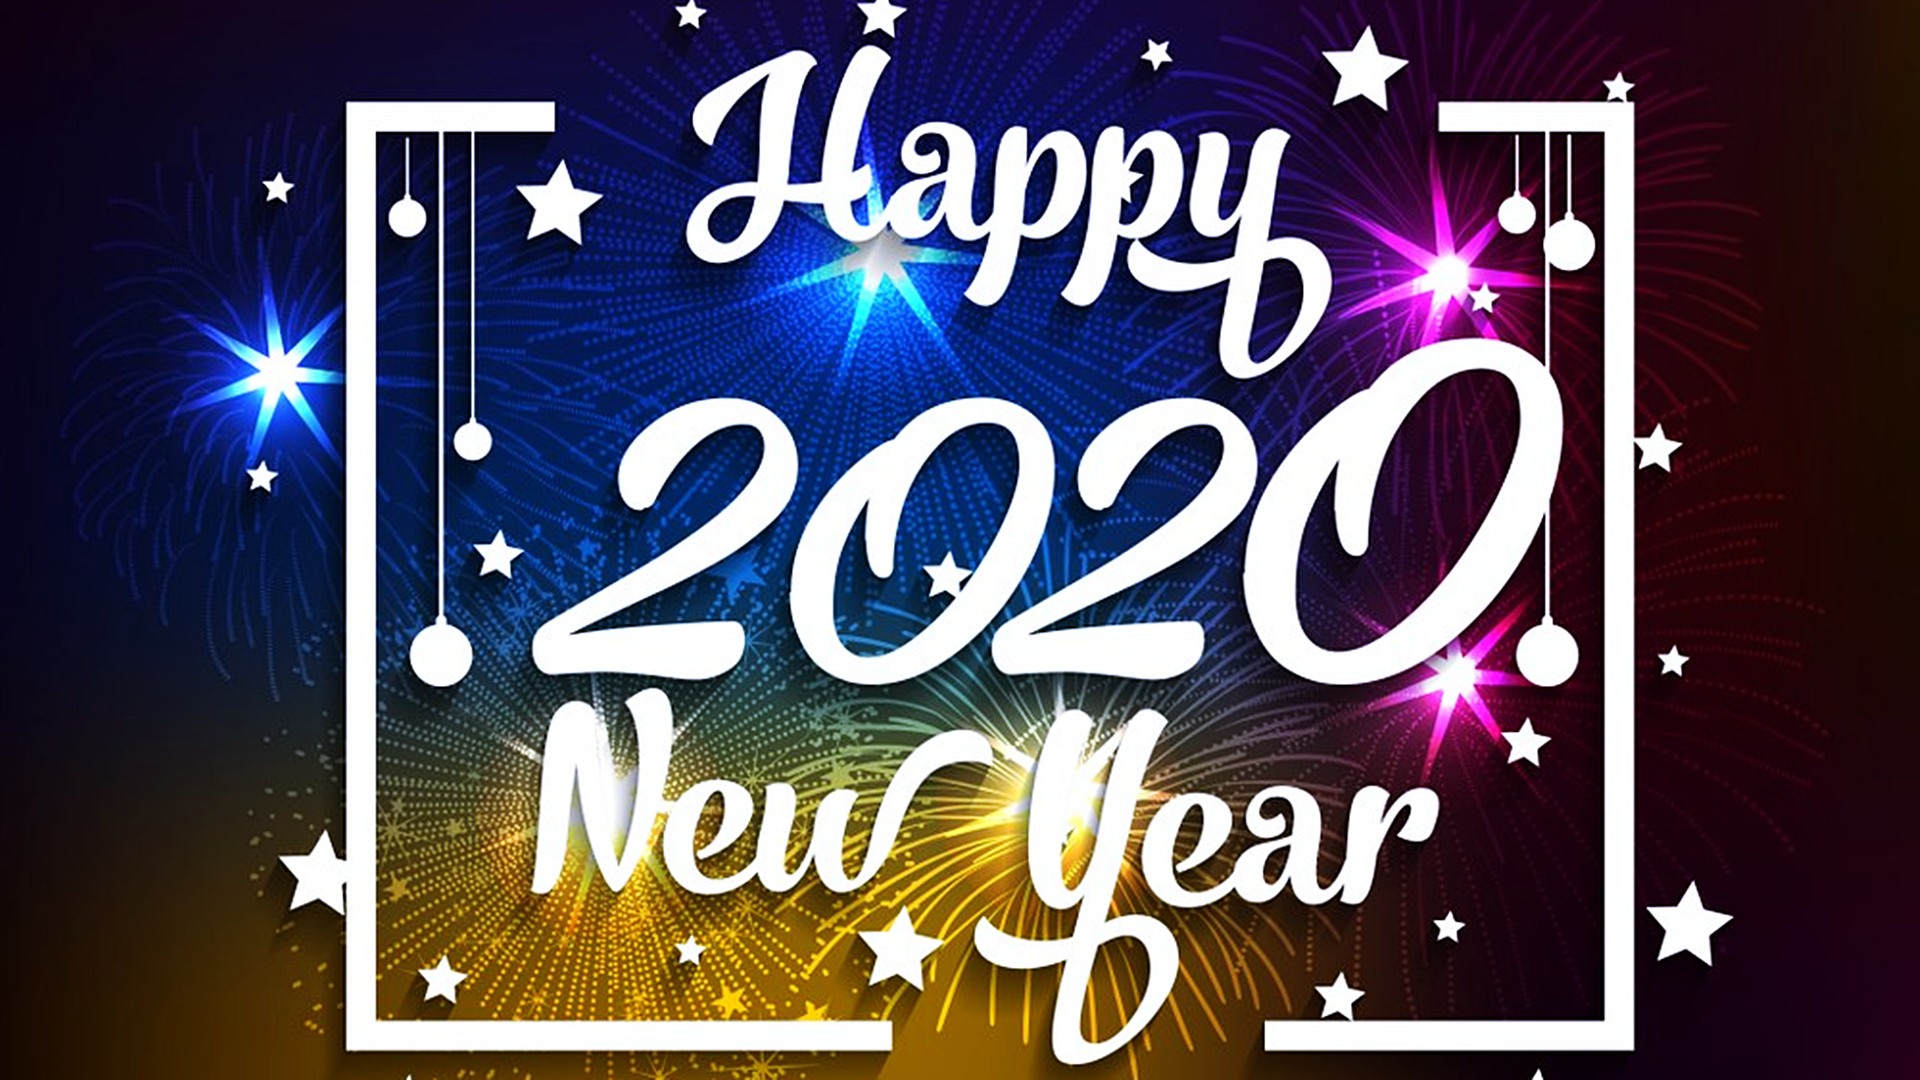 download Happy New Year 2020 HD Wallpapers 45551 Baltana 1920x1080